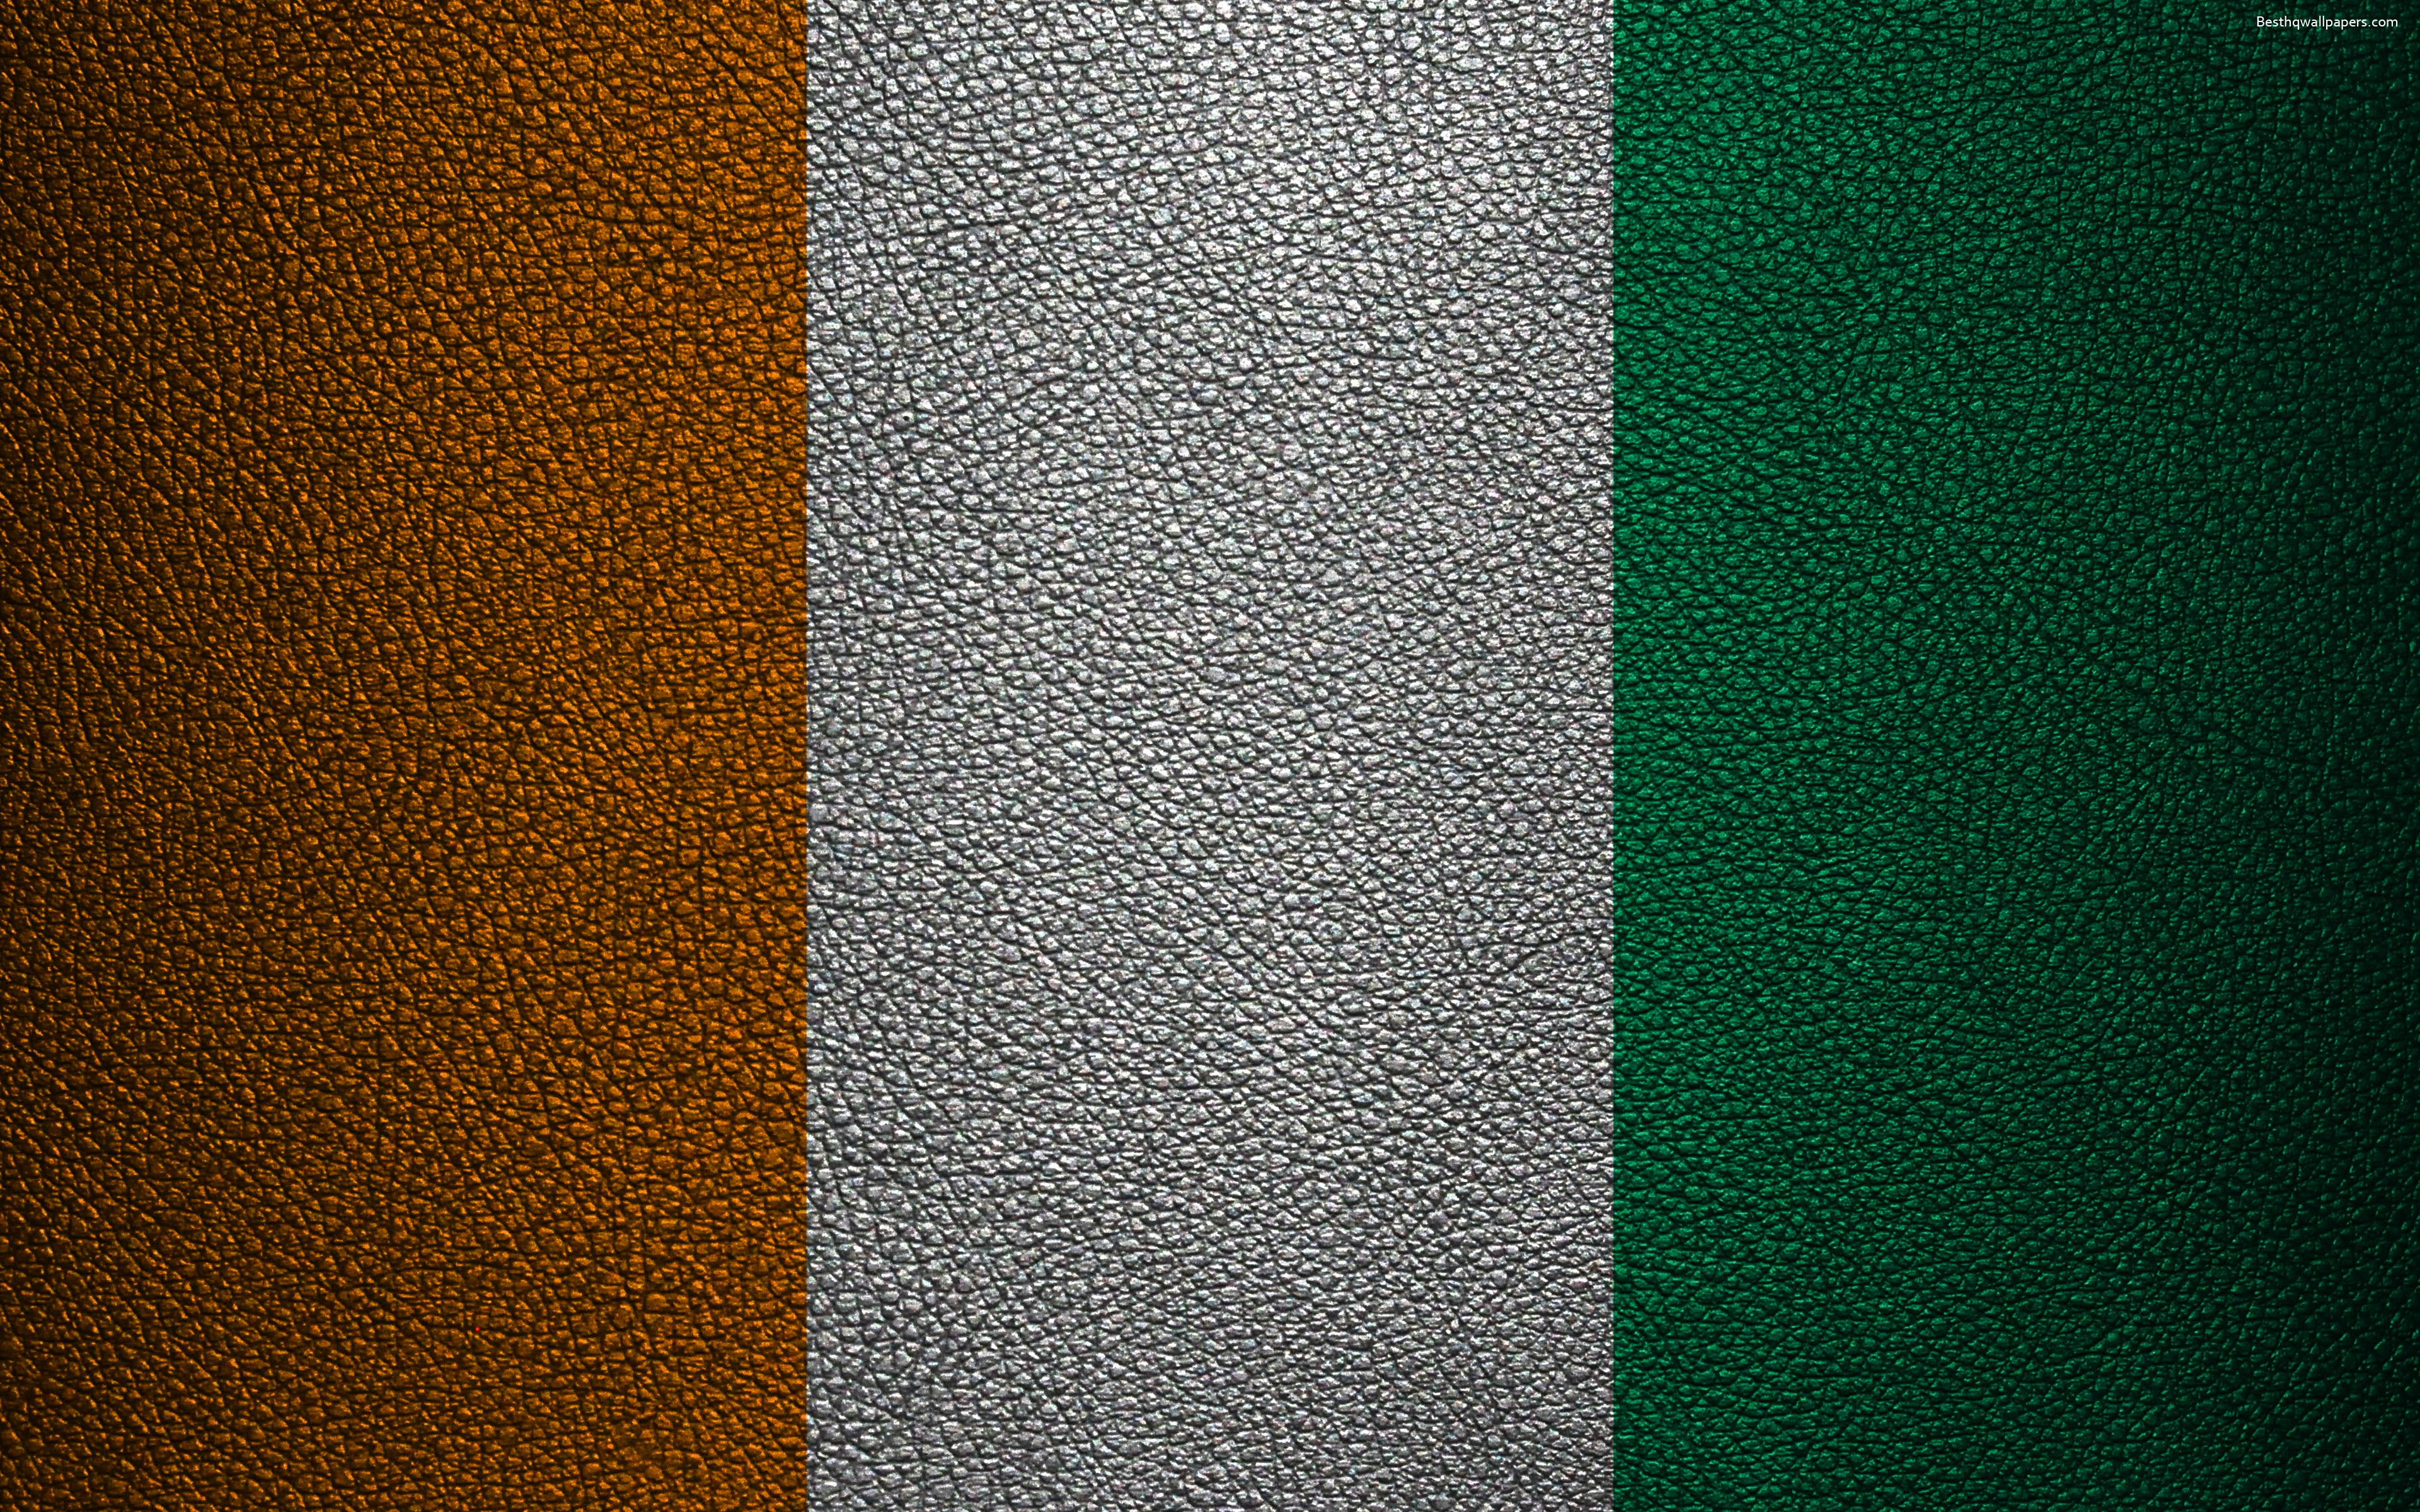 Download wallpapers Flag of Ivory Coast, 4K, leather texture, Africa